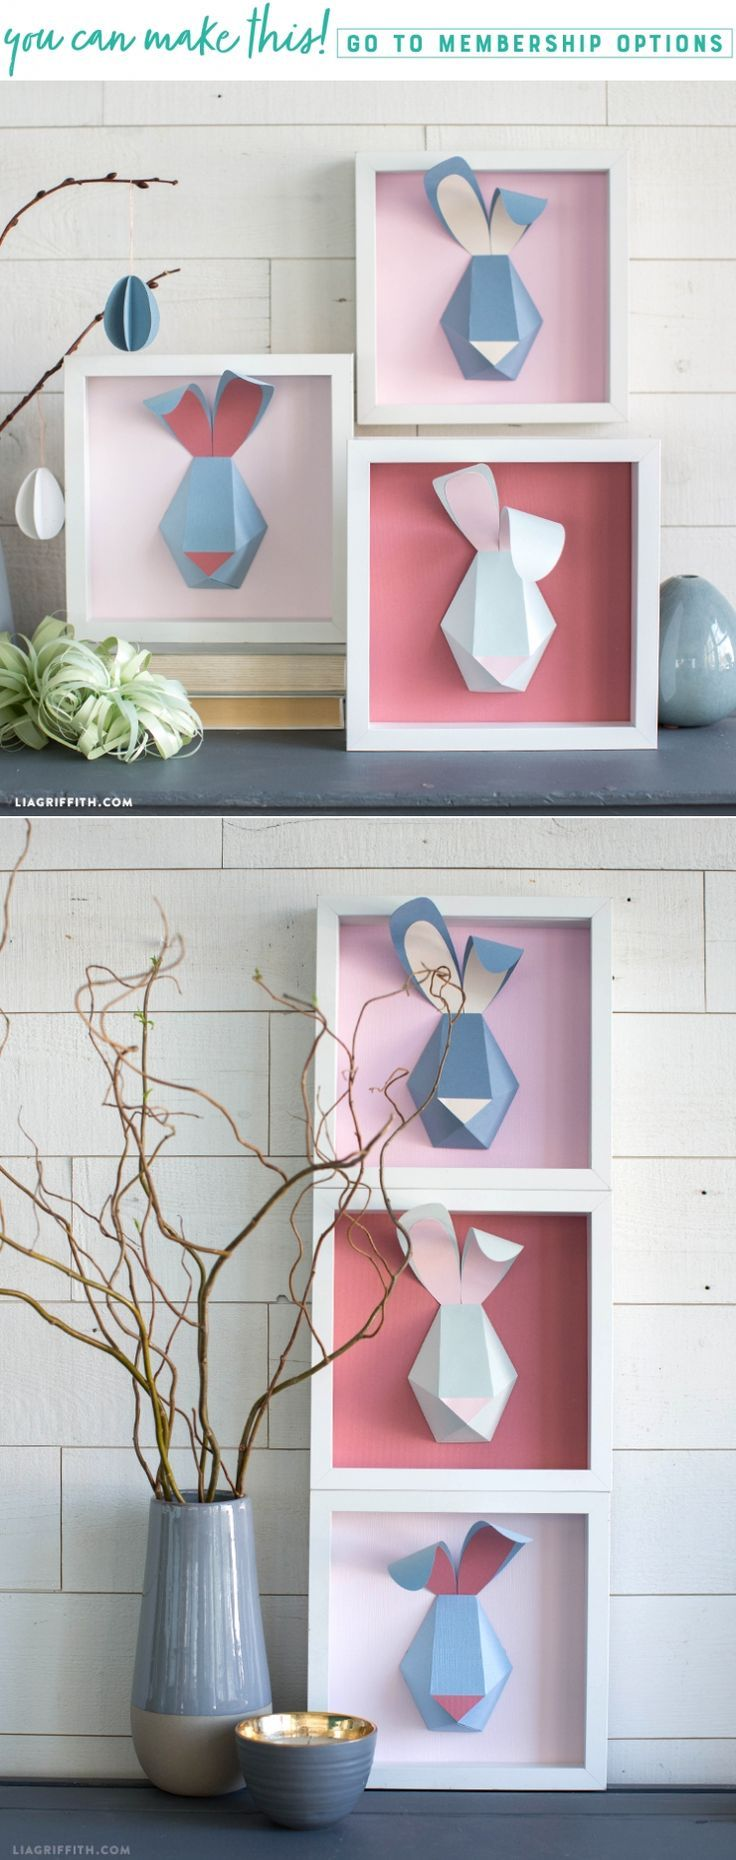 DIY 3D Bunny Artwork to Display in Your Home This Easter